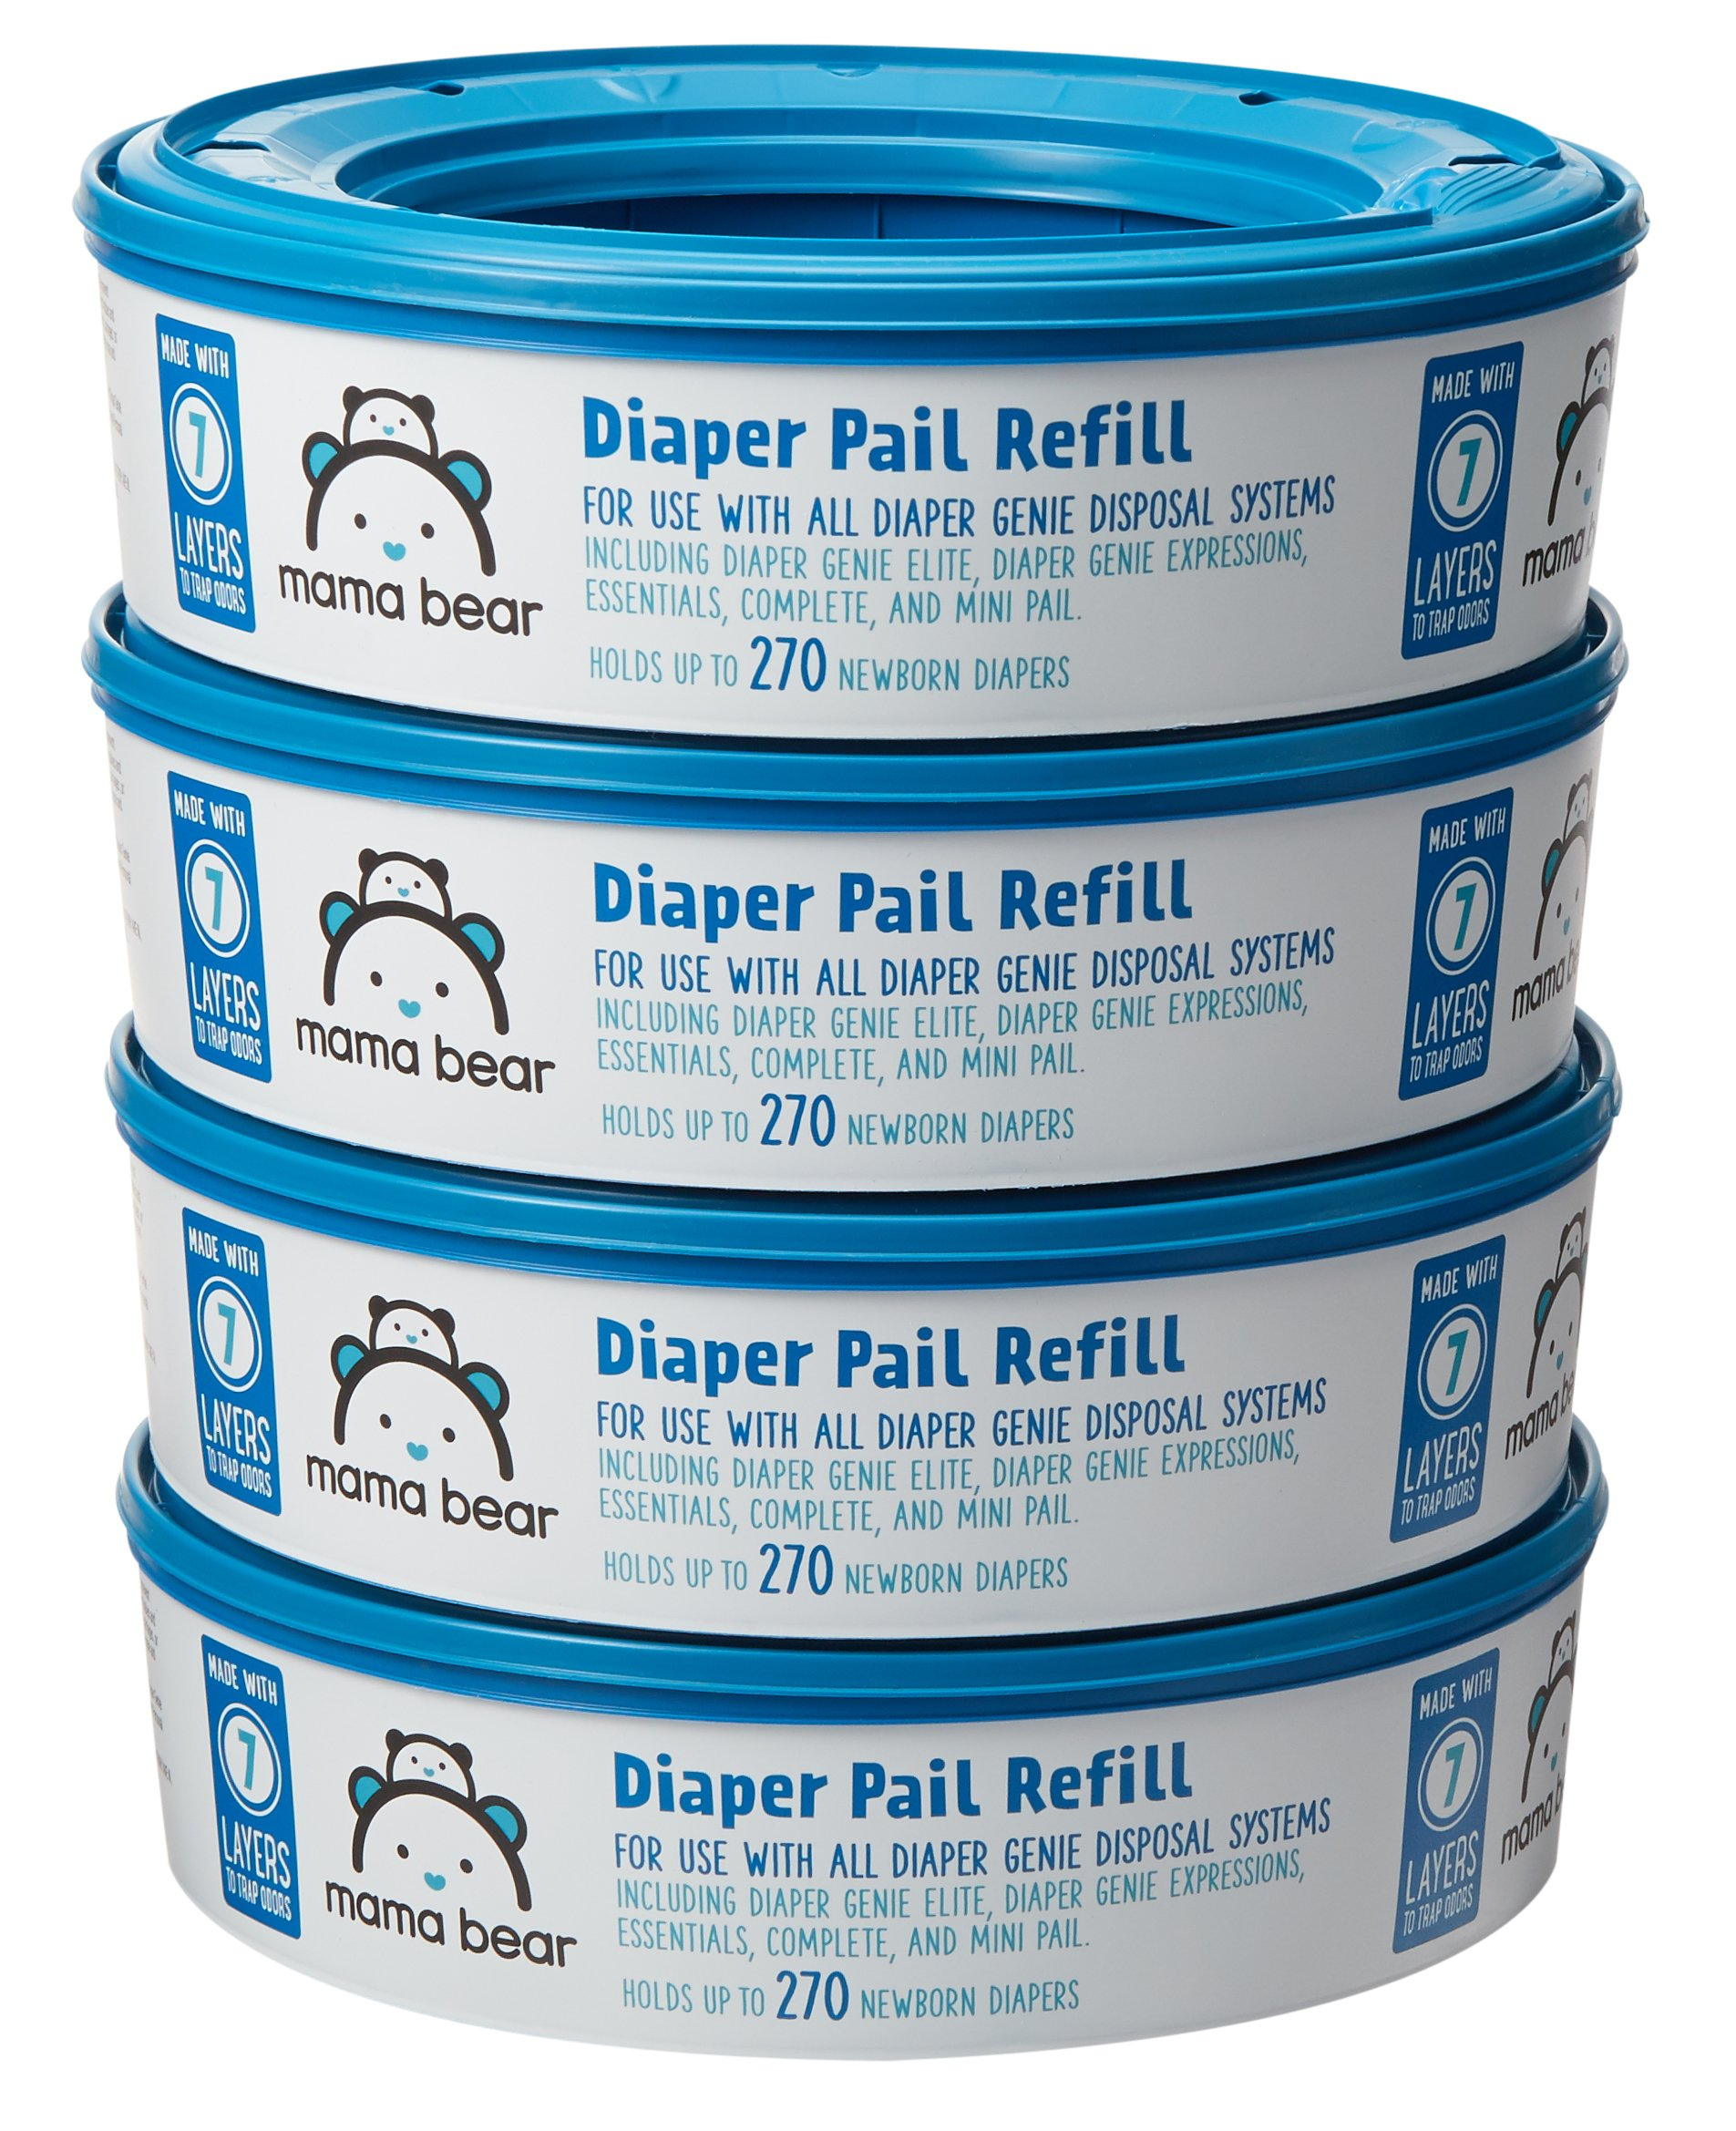 Amazon Brand - Mama Bear Diaper Pail Refills for Diaper Genie Pails, 270 Count (Pack of 4)